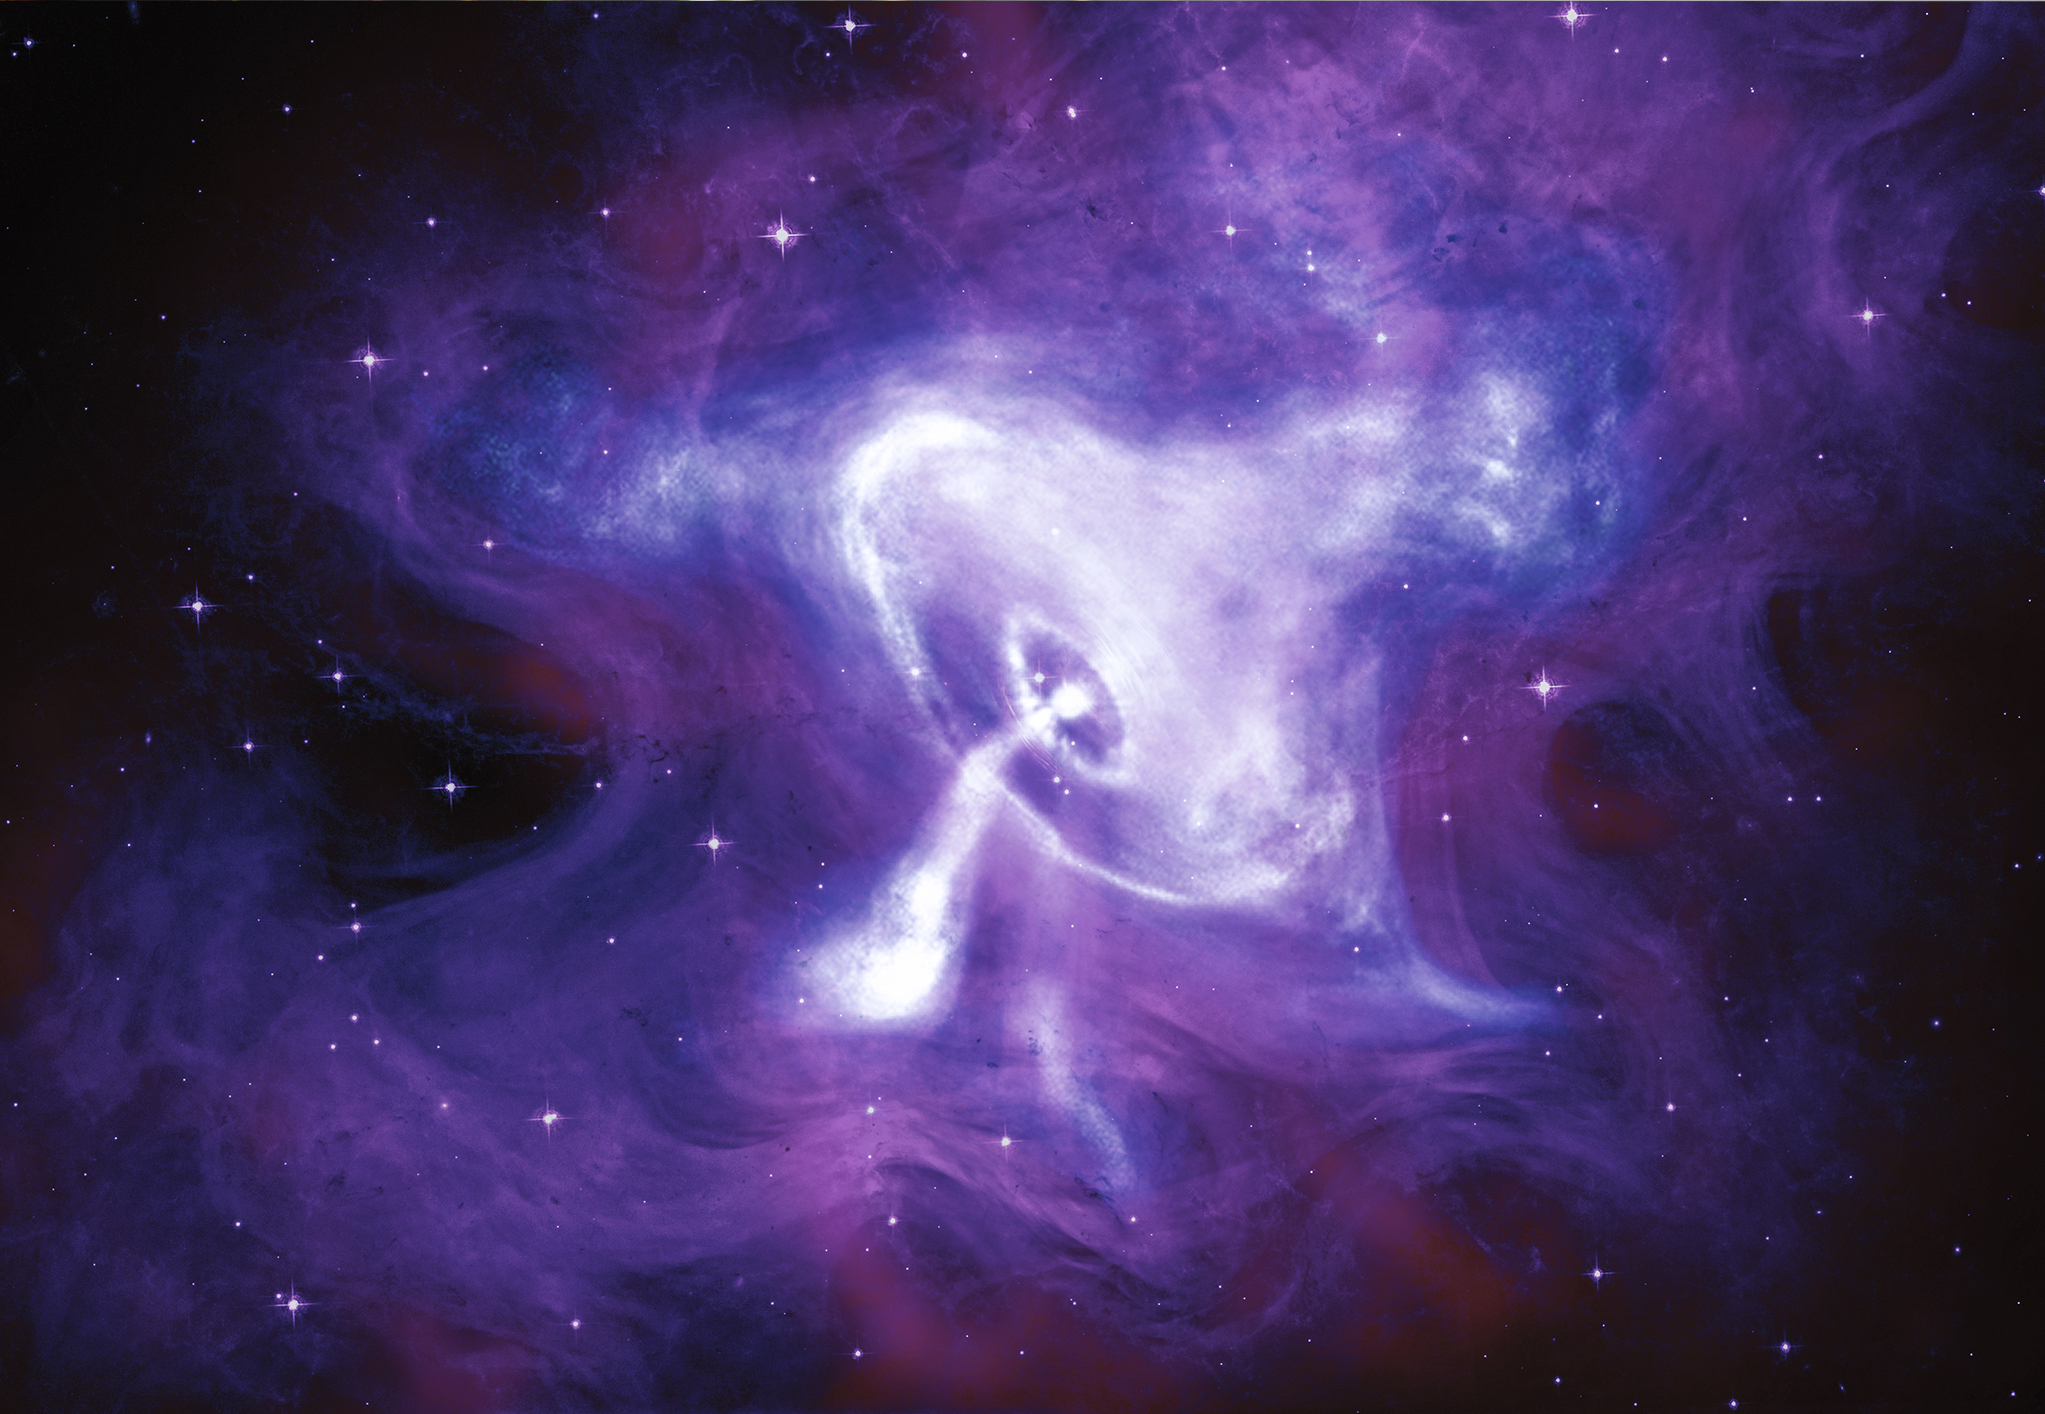 The Crab Nebula sounds oddly beautiful.